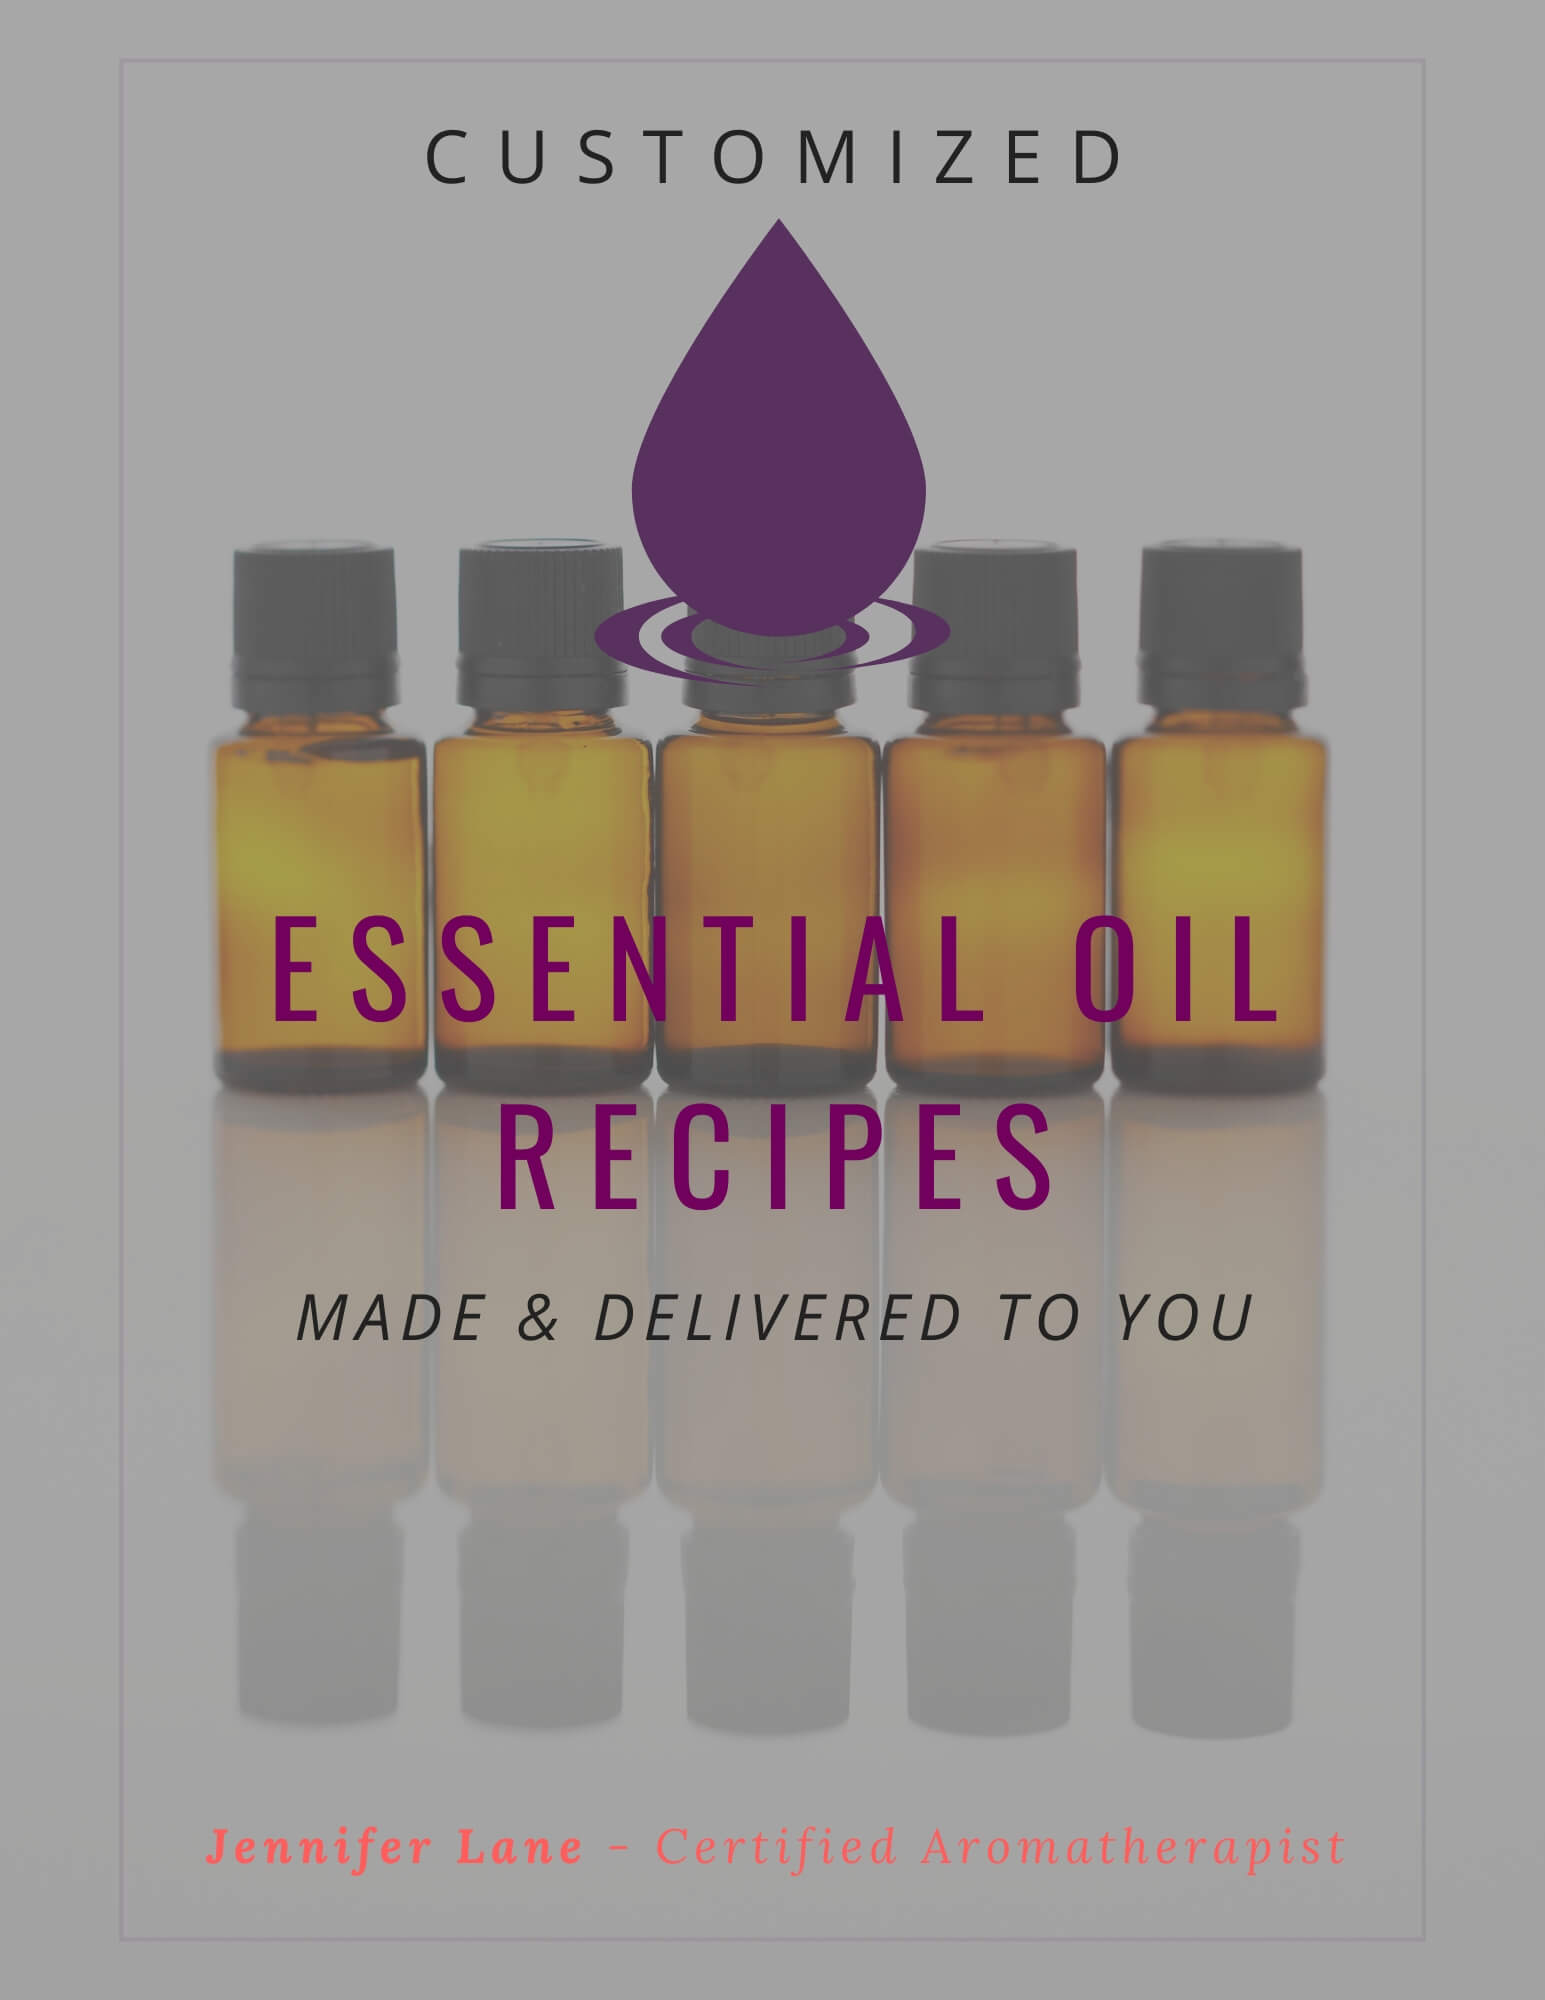 Custom Essential Oil Blends and Recipes Made for You